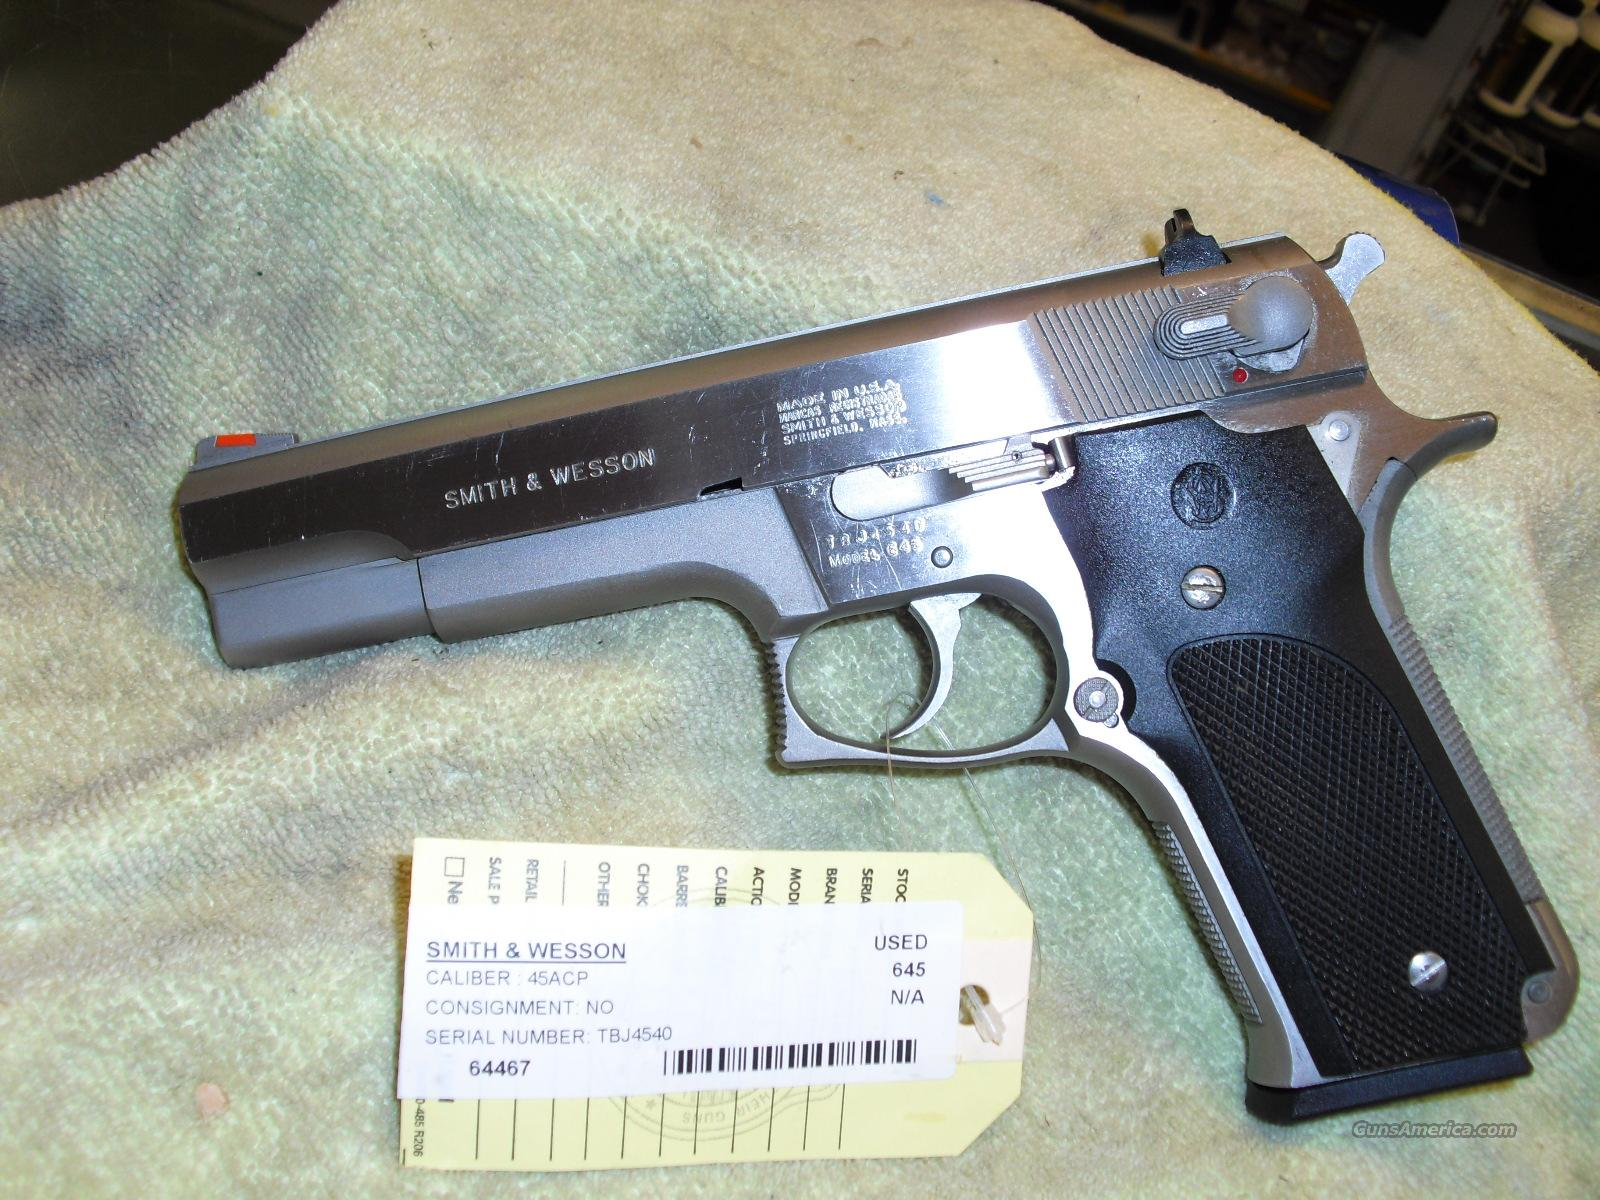 64467  S&W 645  Stainless .45 ACP  Guns > Pistols > Smith & Wesson Pistols - Autos > Steel Frame